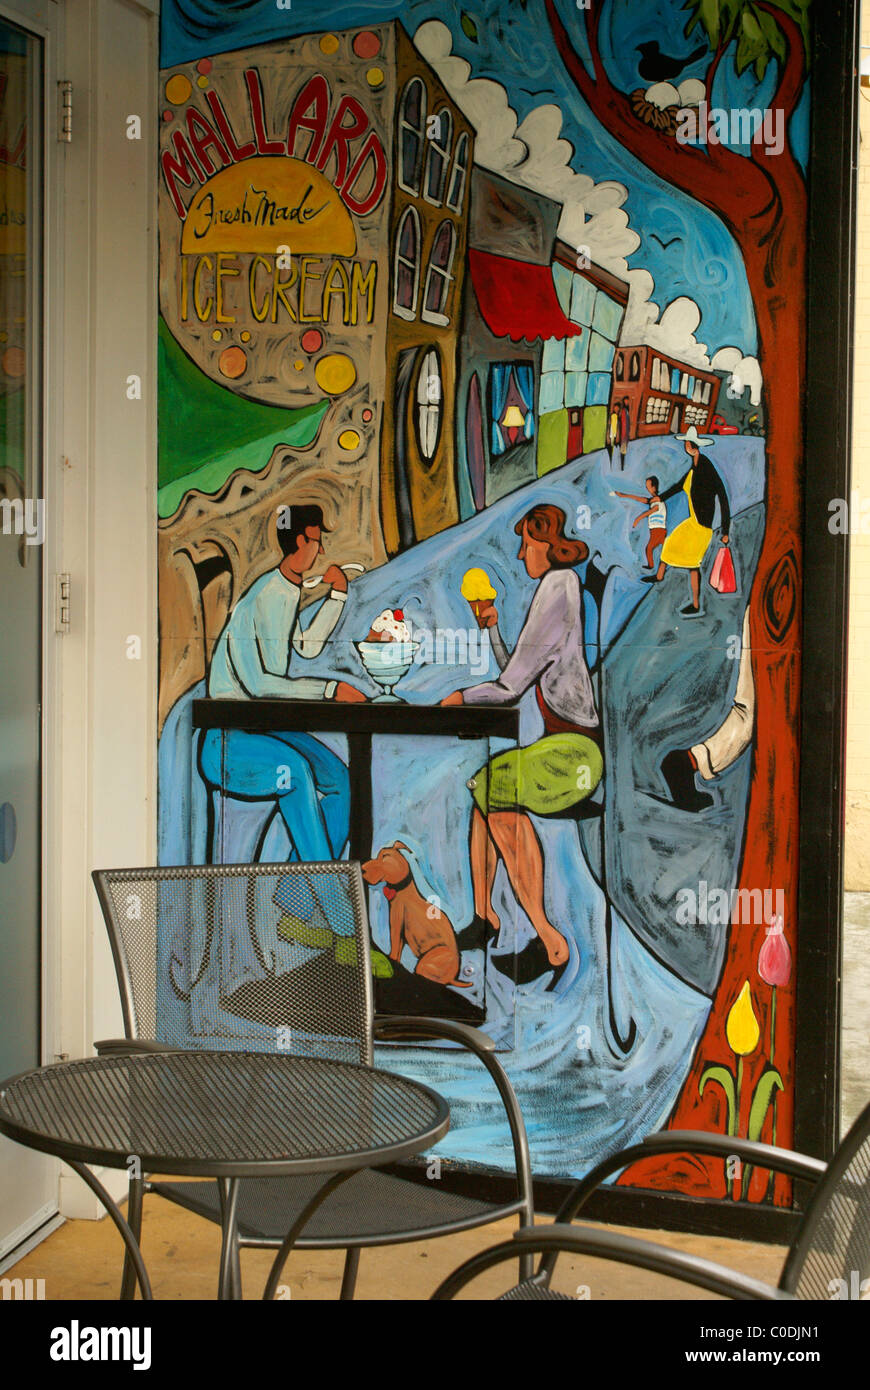 Mural Showing A Couple Eating Ice Cream At An Outdoor Cafe